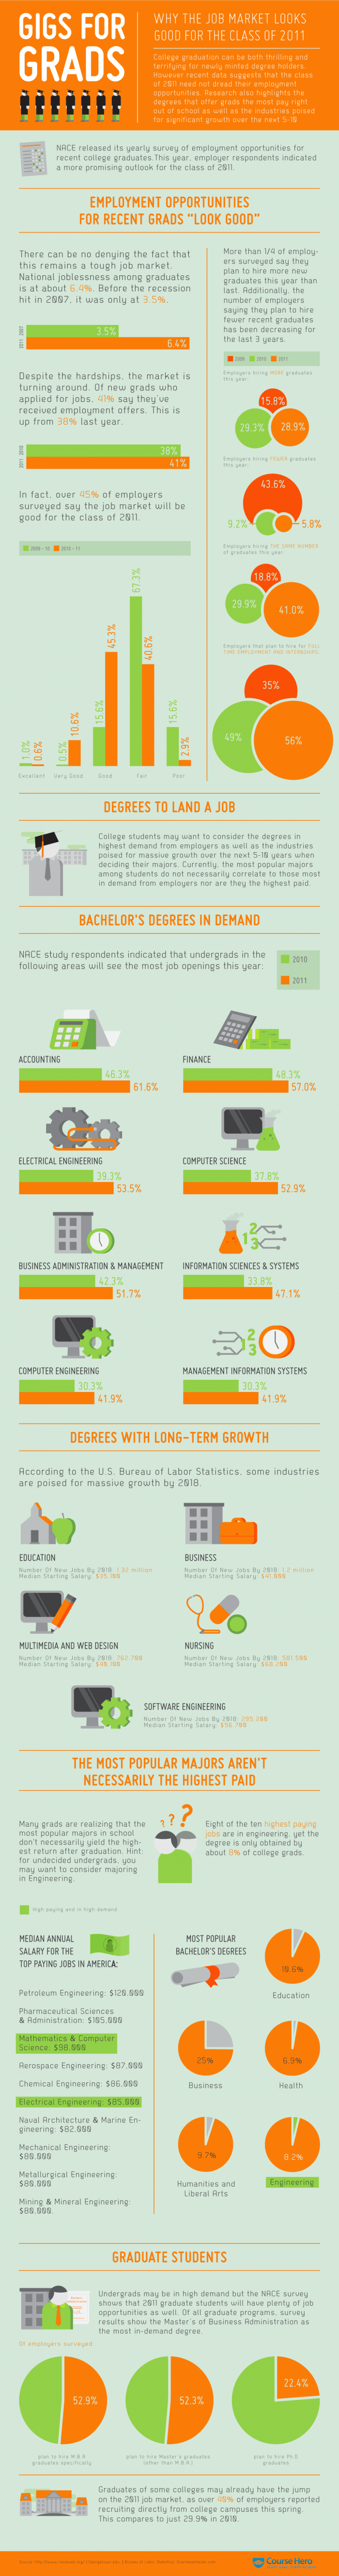 Hot Jobs Infographic